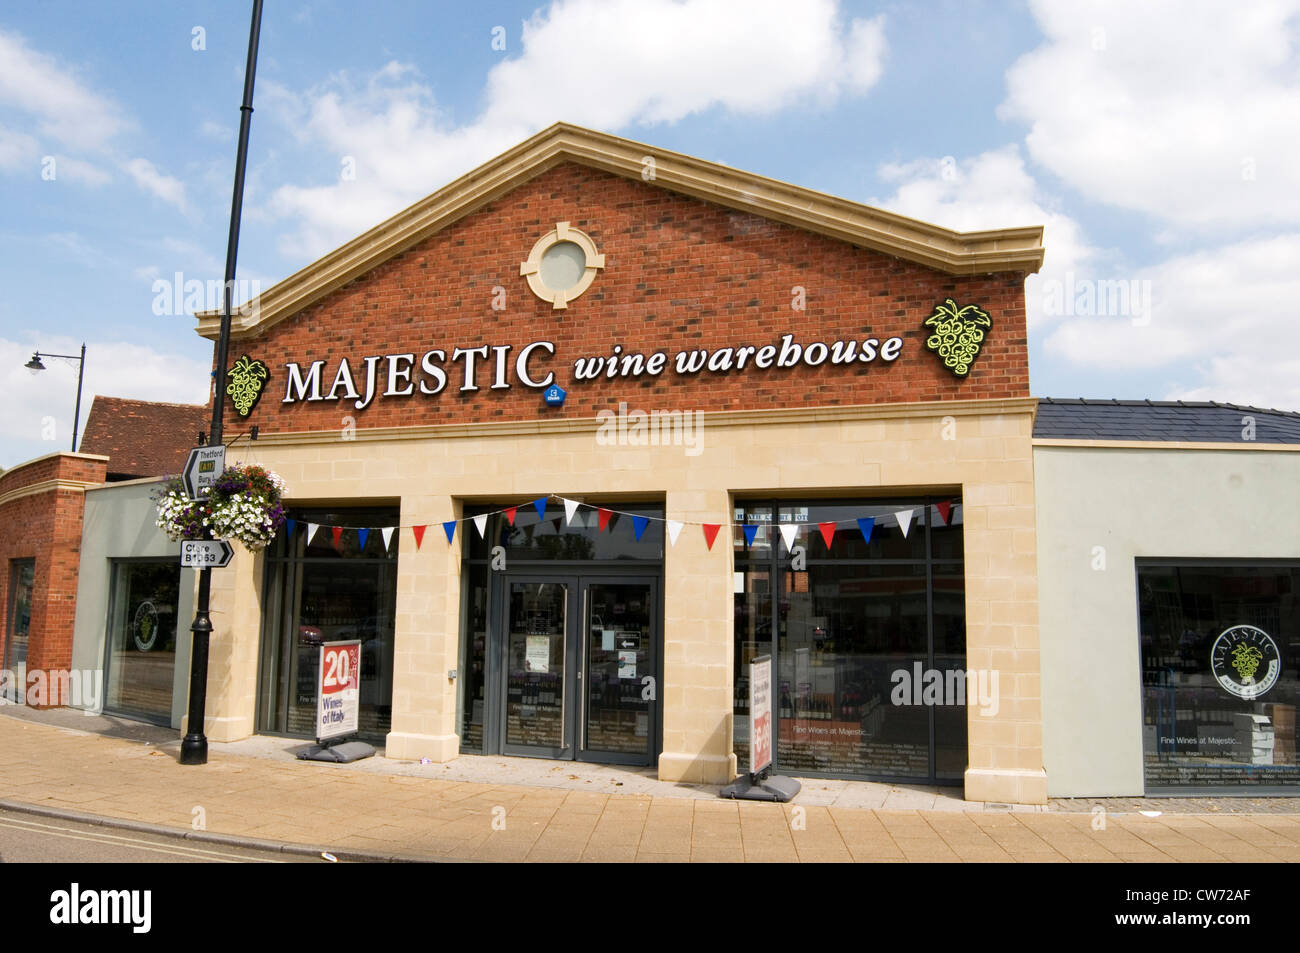 majestic wine warehouse retailer retailers off license chain alcohol brand high street merchant merchants - Stock Image